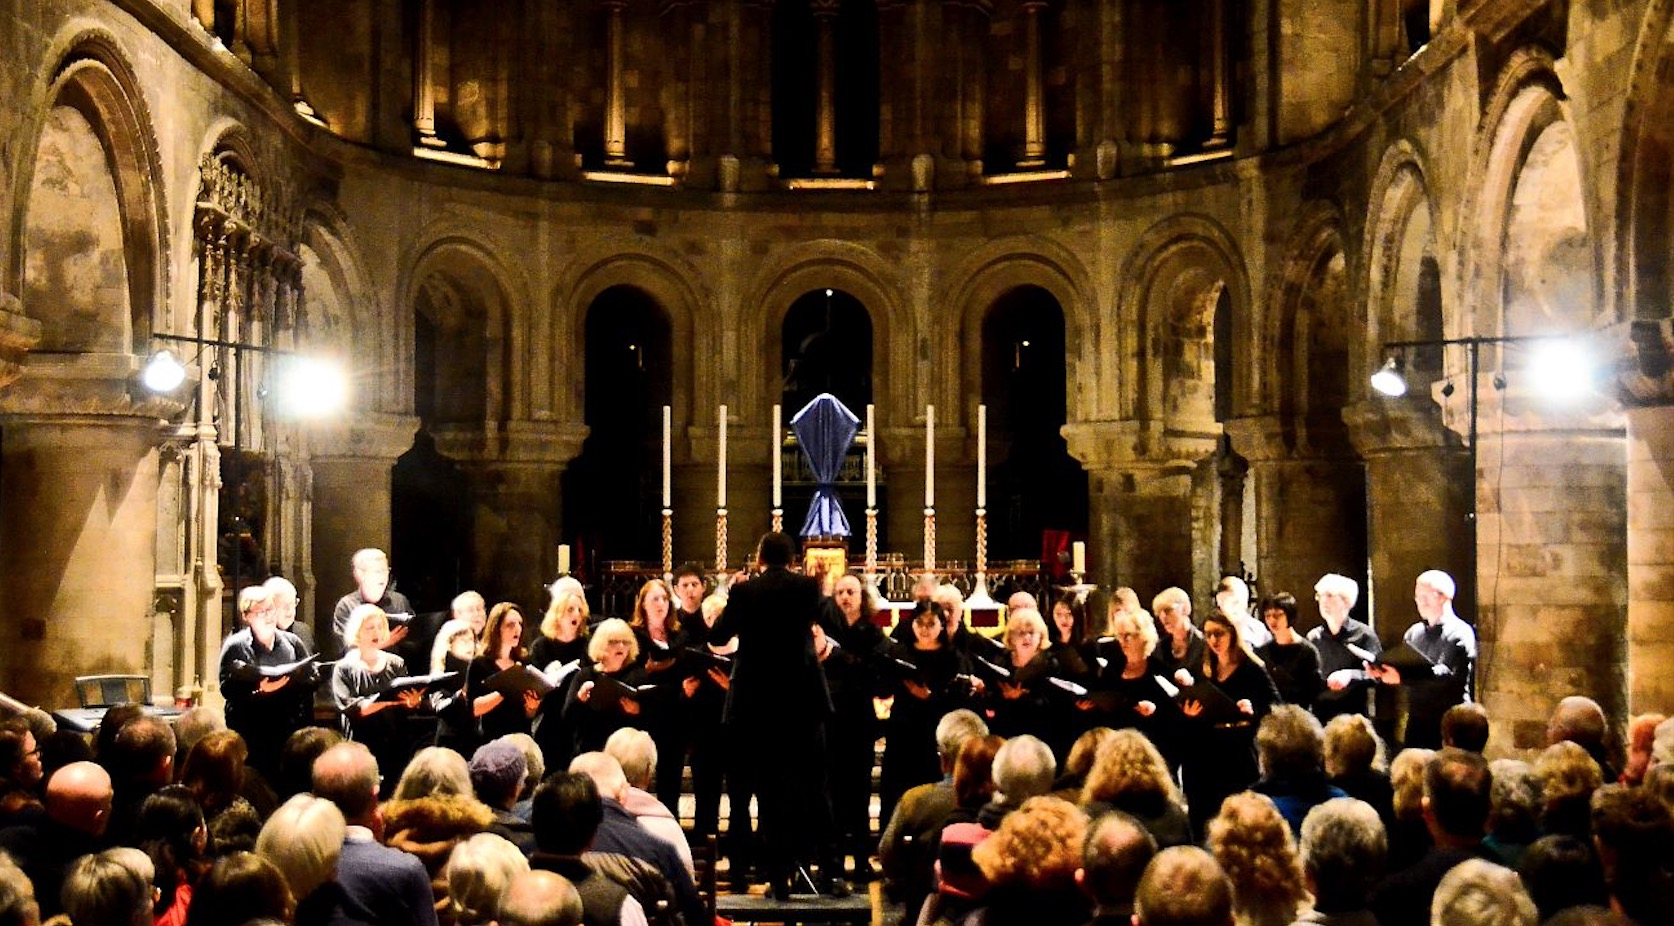 Armada! concert attracts large crowd to St Bart's, Smithfields